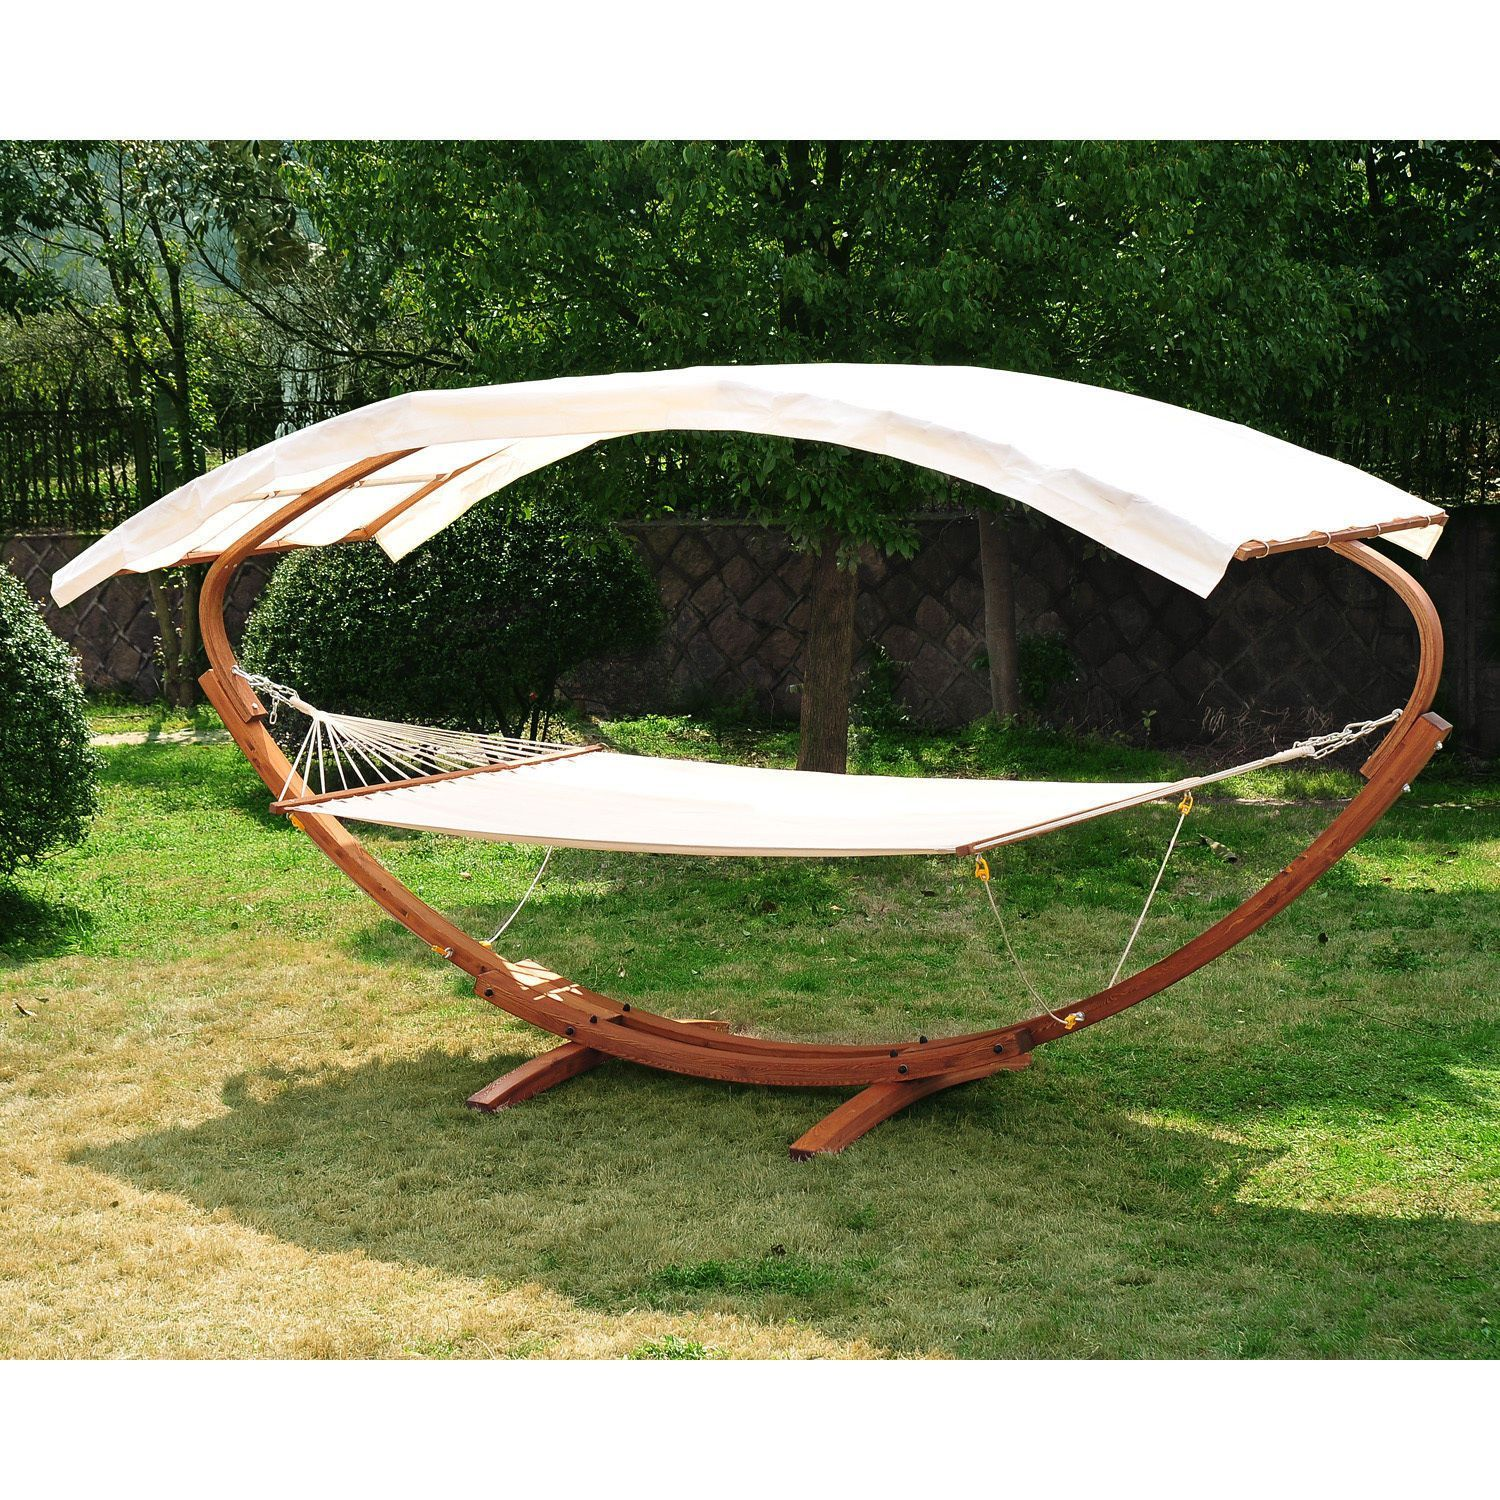 furniture patio co dp shade double garden in different outdoors lounger amazon sun chaise colours uk miadomodo day canopy outdoor bed hammock